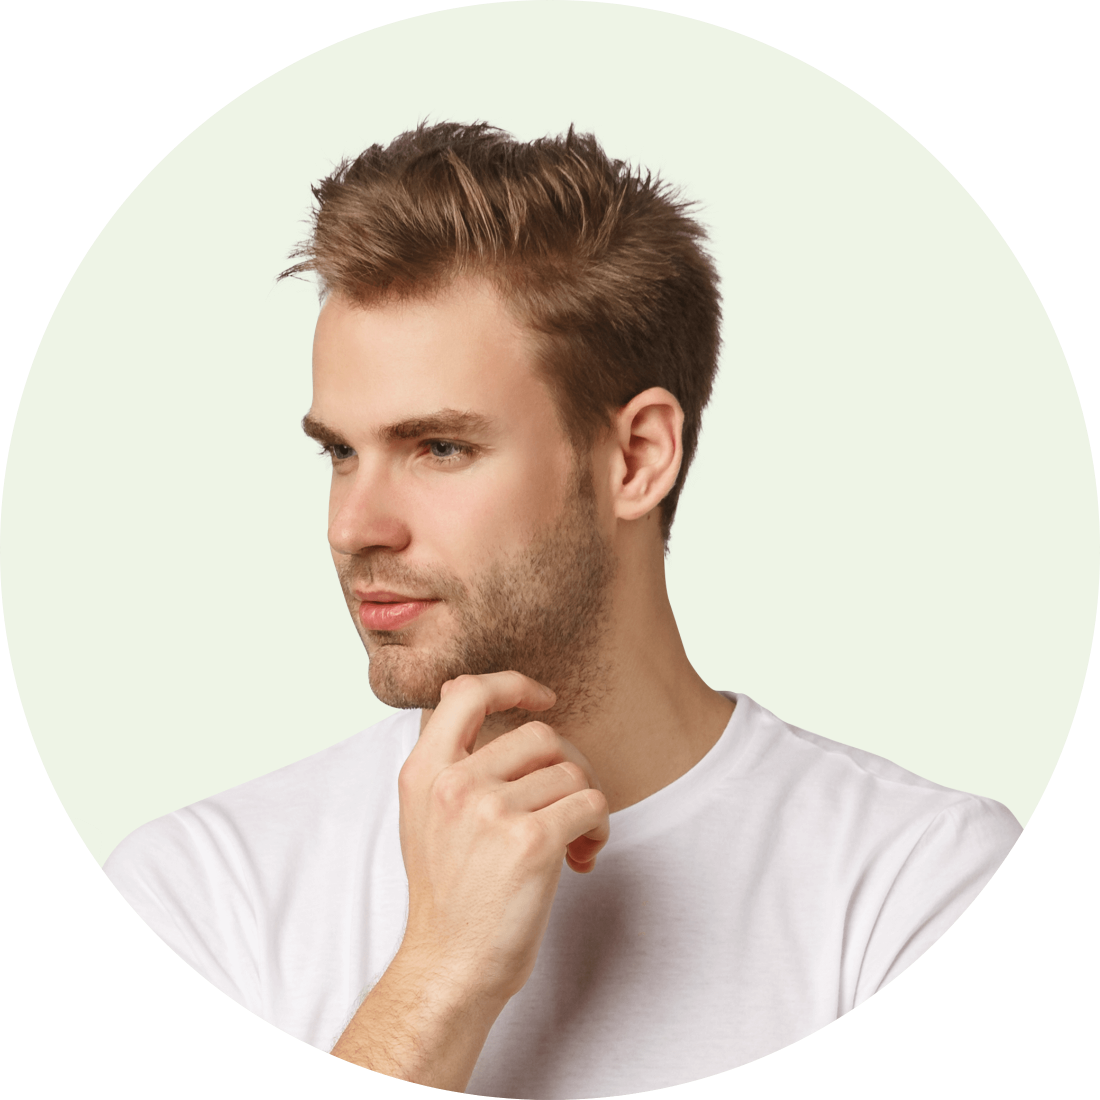 Why men choose Rhinoplasty?